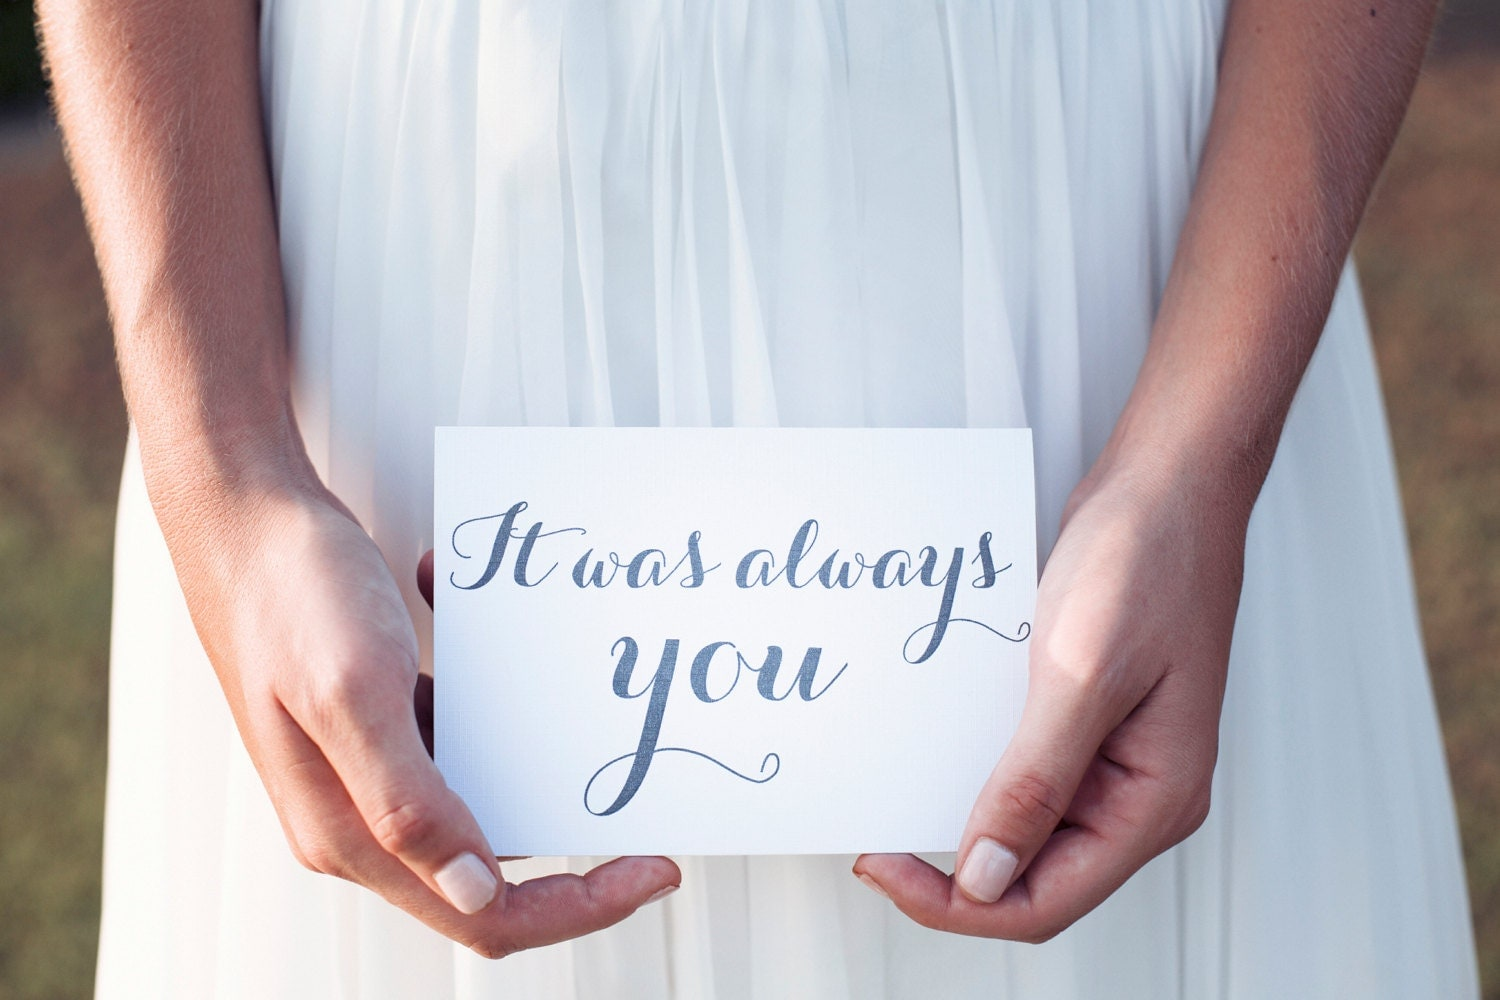 Gift Ideas For Groom On Wedding Day: It Was Always You Wedding Day Card Gift To Groom From Bride